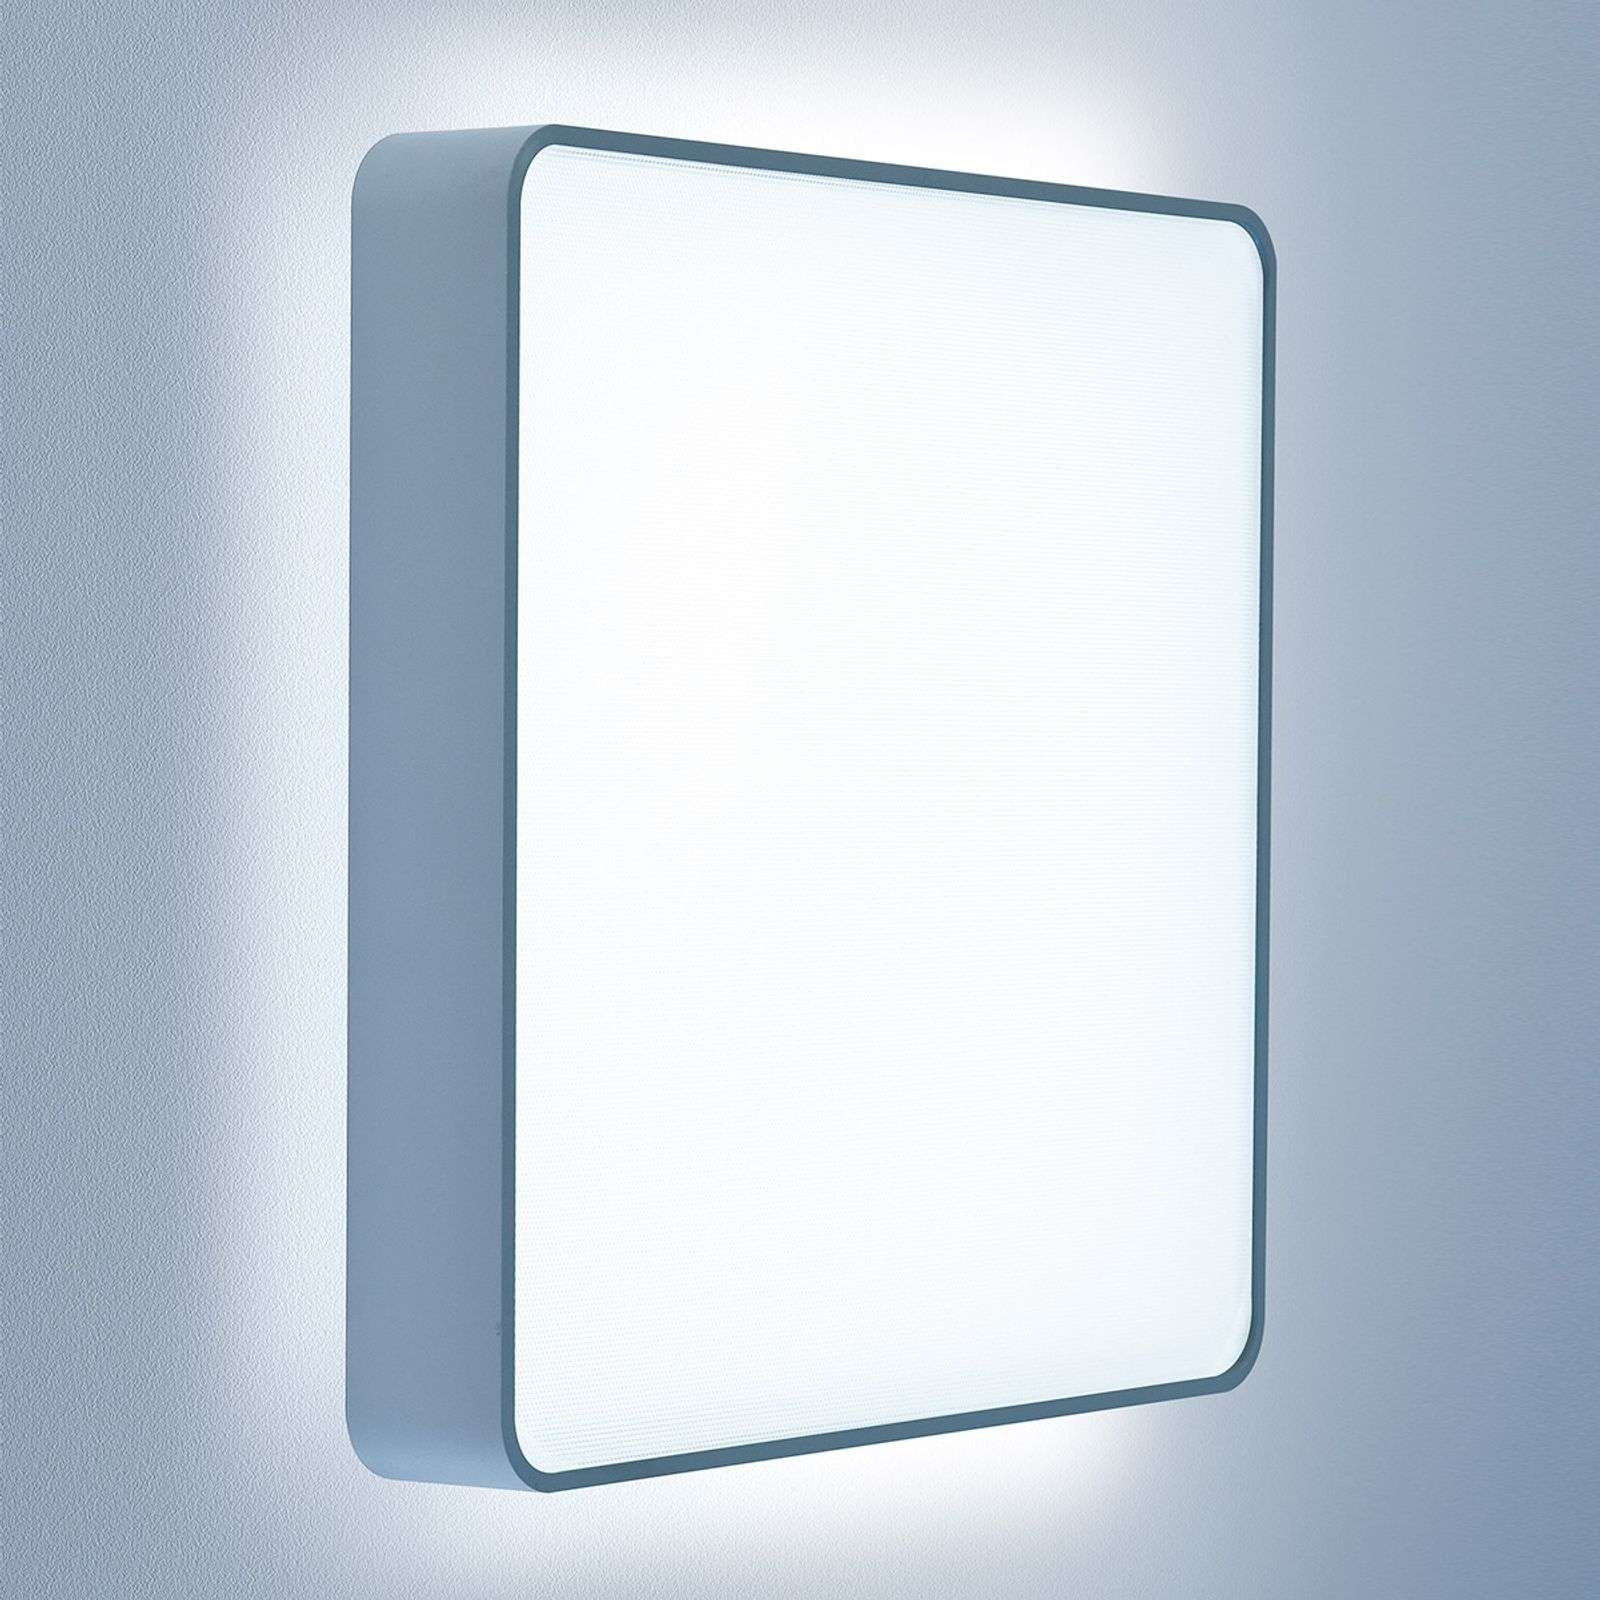 Applique LED Caleo X2 carrée 41,4 cm